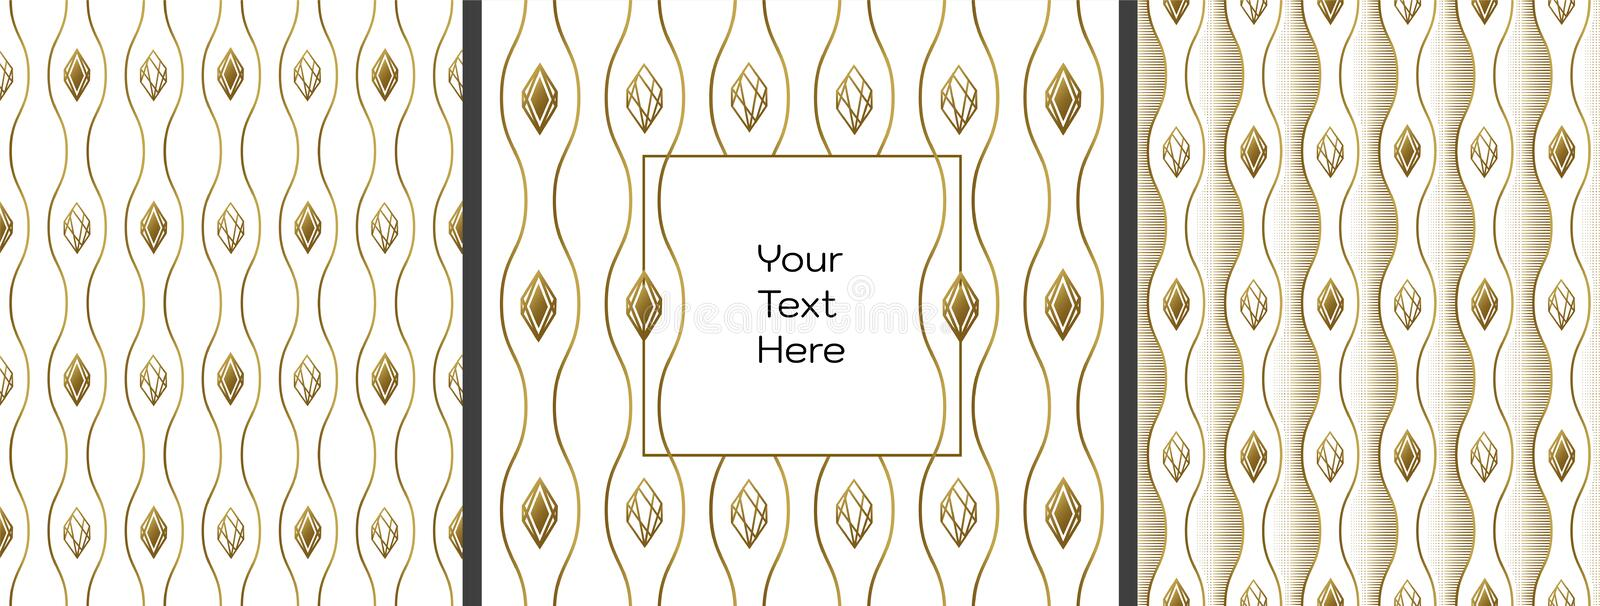 Abstract background and your text. Wavy gold lines and diamonds. Free space for text, advertising, design, flyers. royalty free illustration